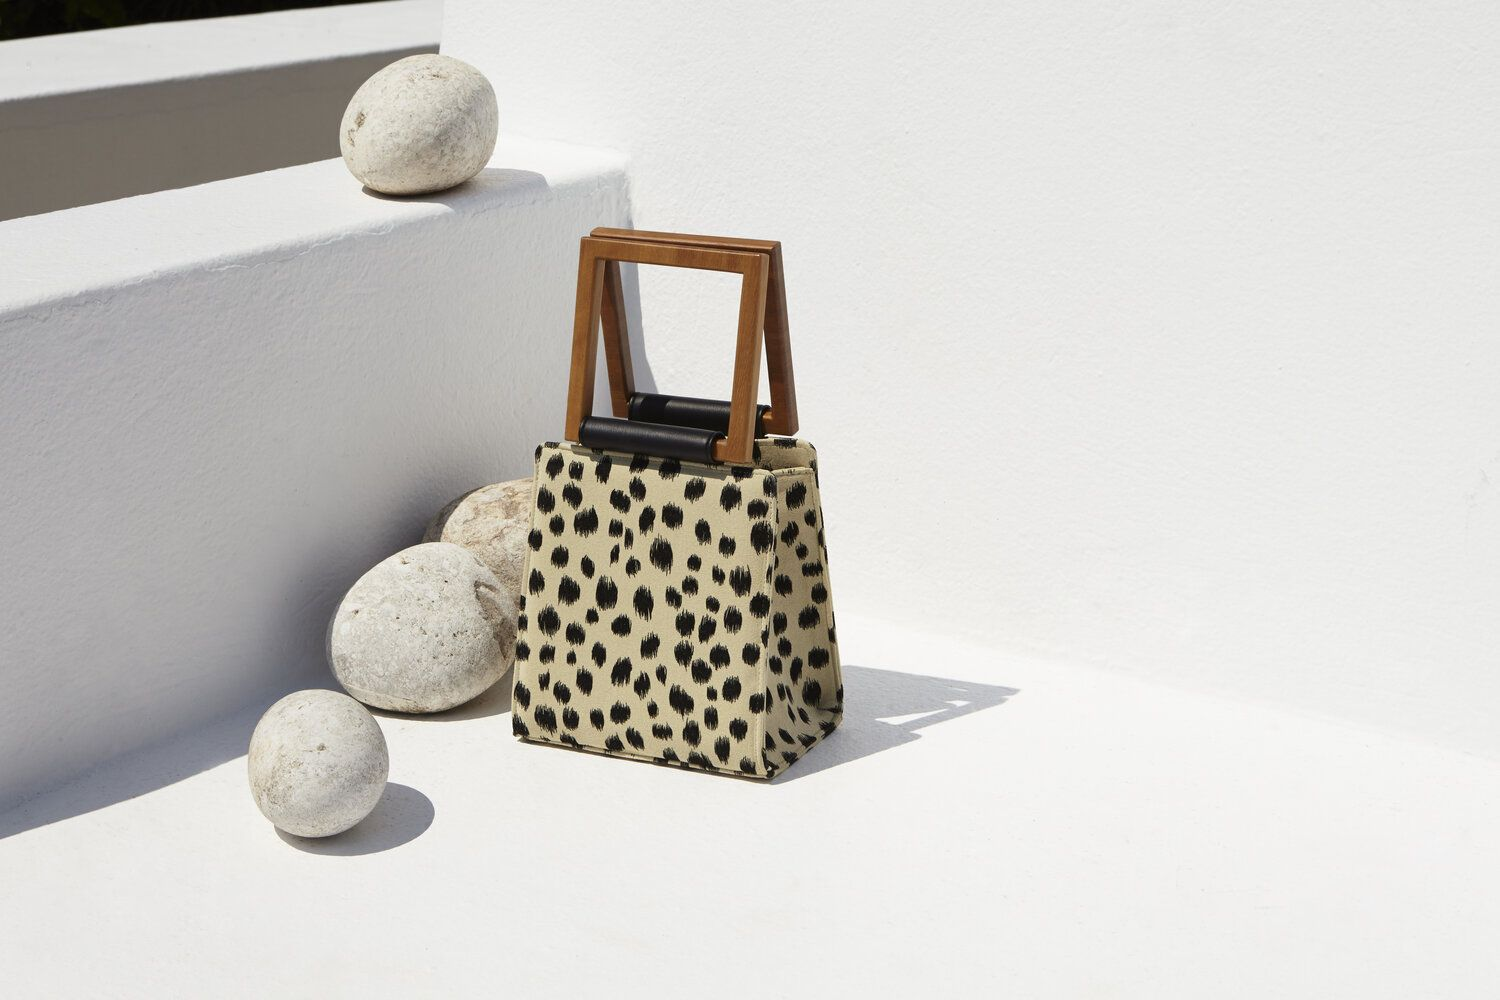 7 Sustainable Bag And Accessory Brands To Buy Now